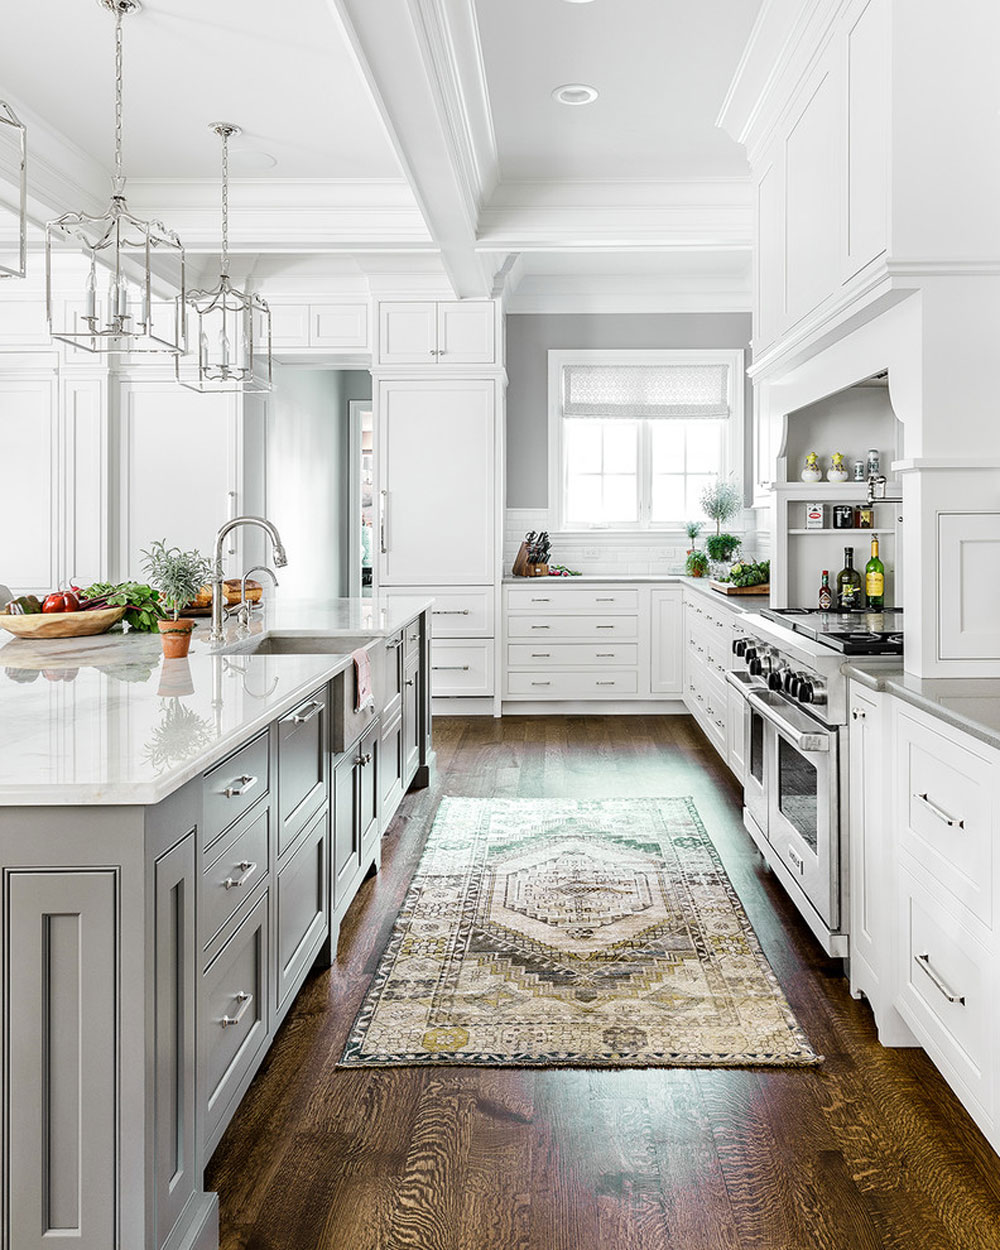 DS-Chicago-to-Birmingham-by-Designstorms-LLC Kitchen remodeling: What you need to know before a kitchen makeover